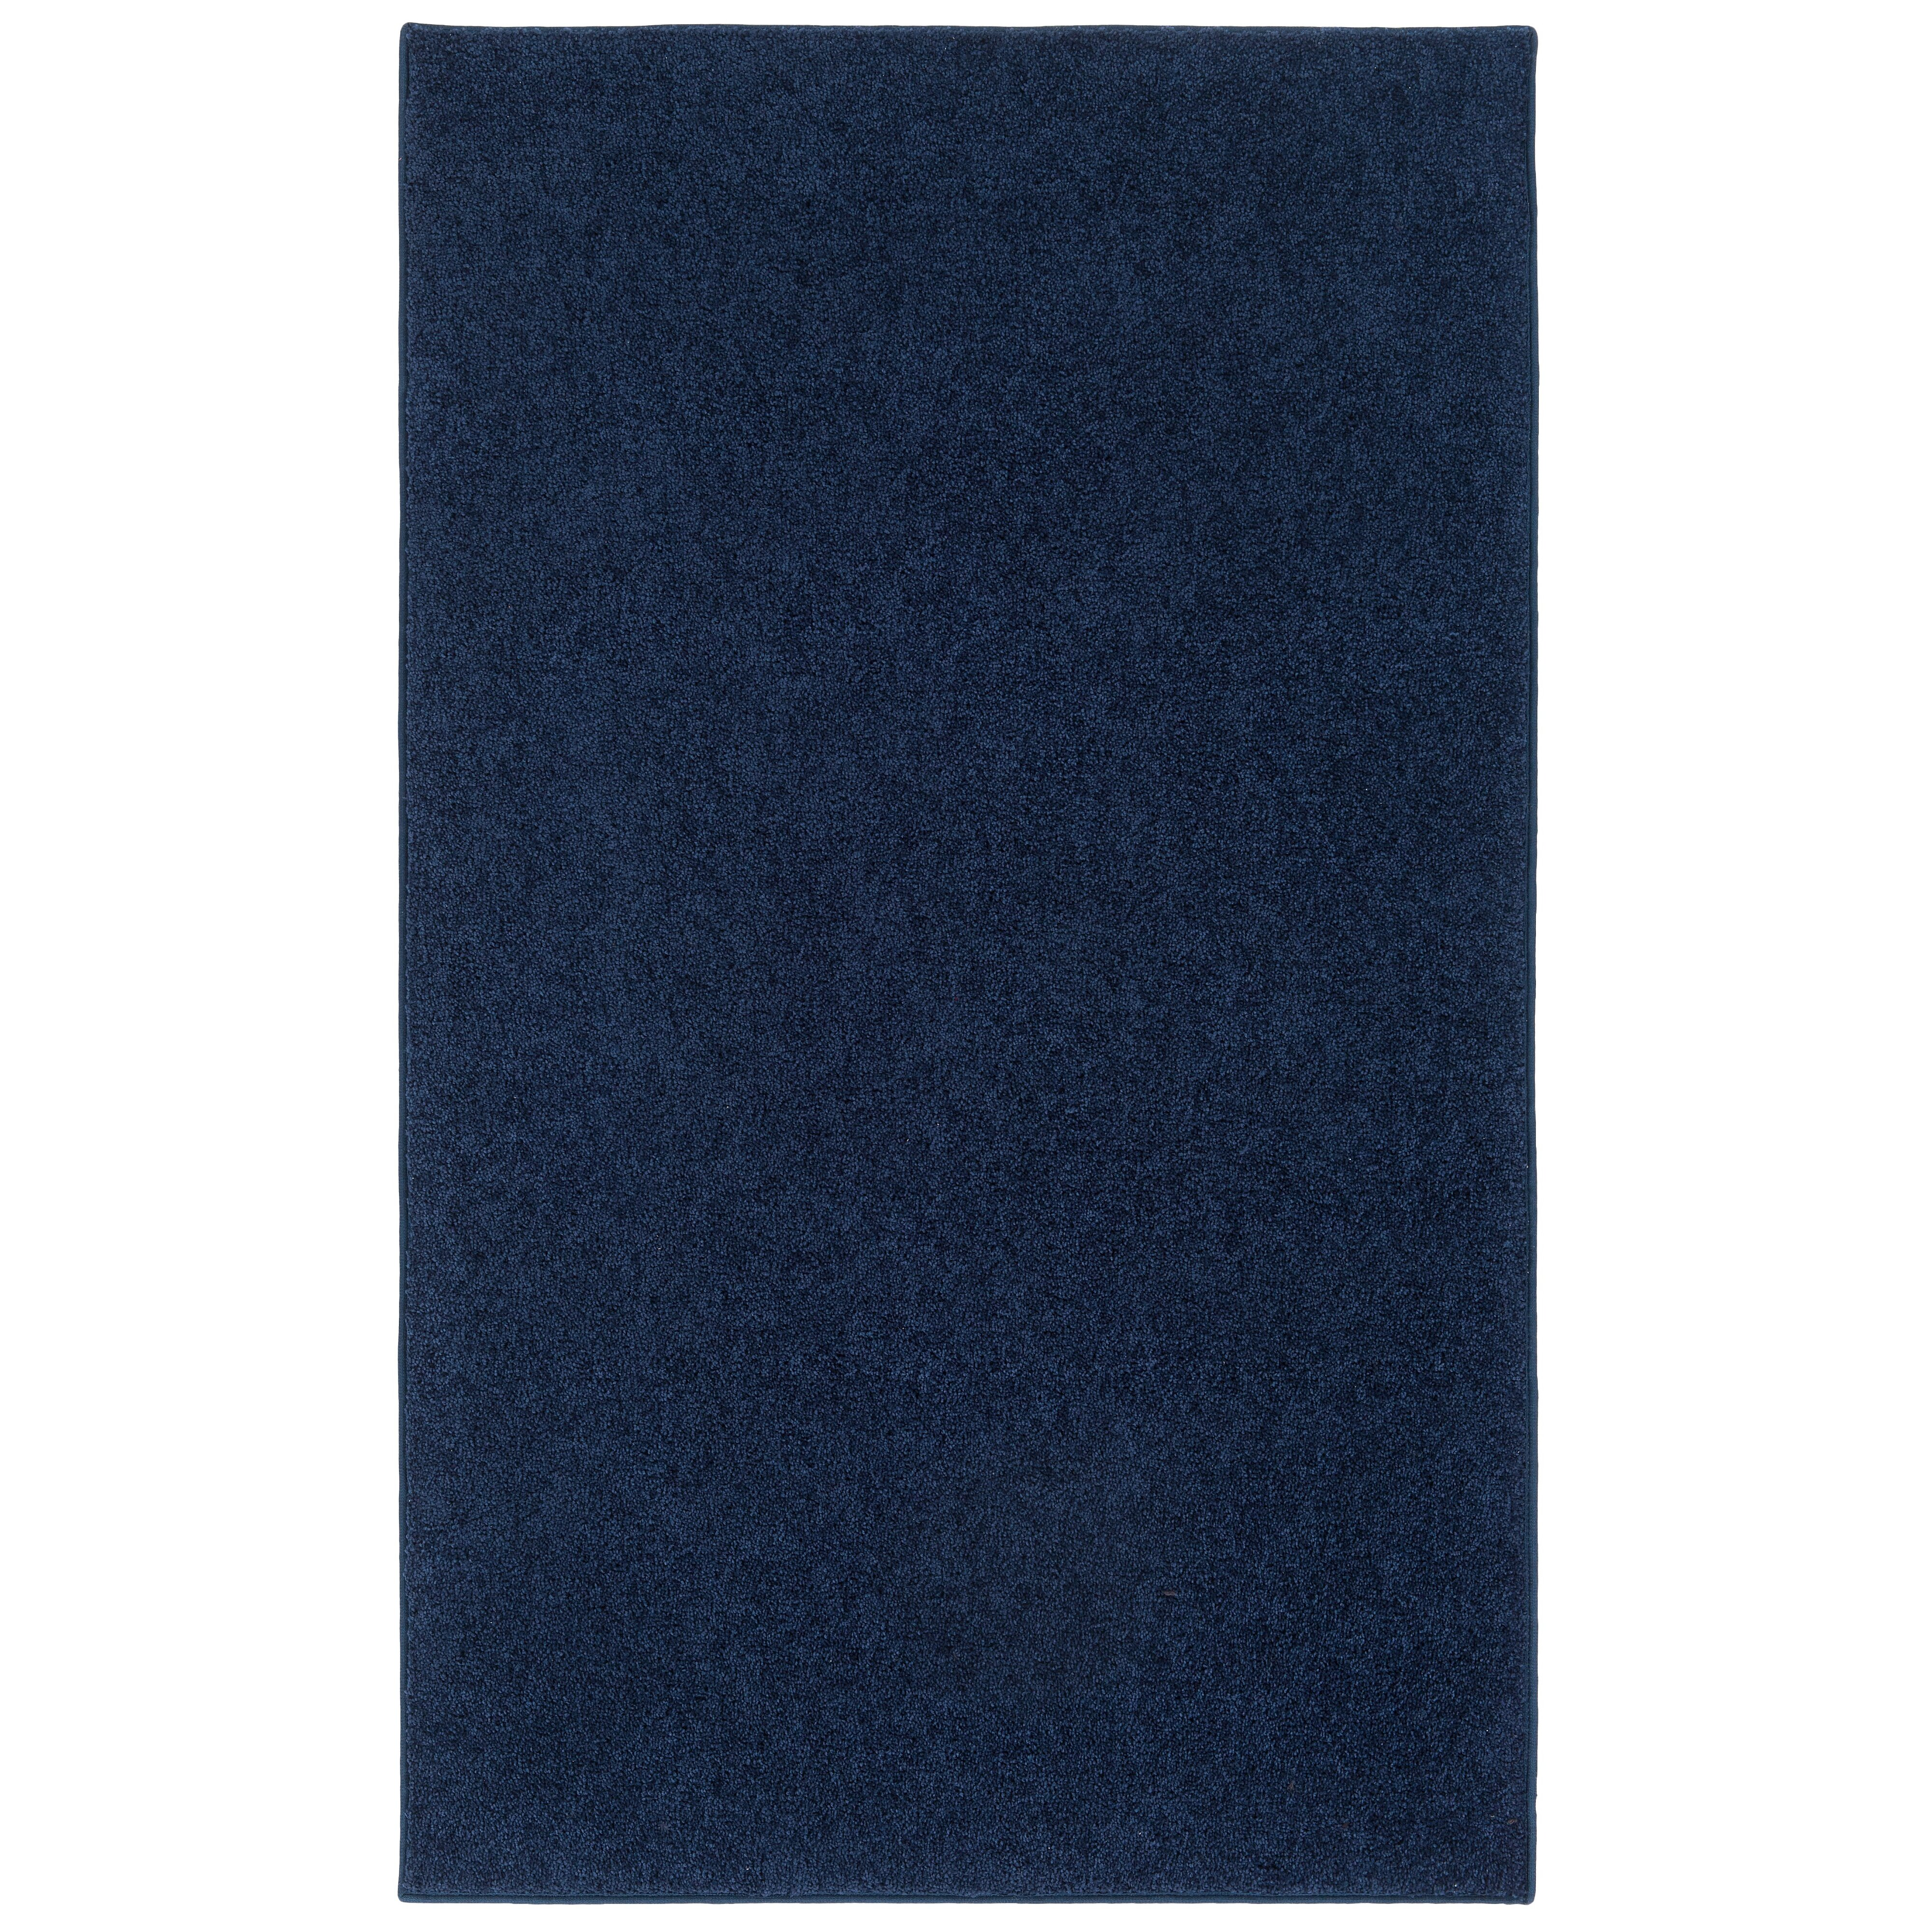 Nance Industries Ourspace Bright Midnight Navy Blue Area  : Midnight Navy Blue Area Rug from www.wayfair.com size 4000 x 4000 jpeg 4183kB